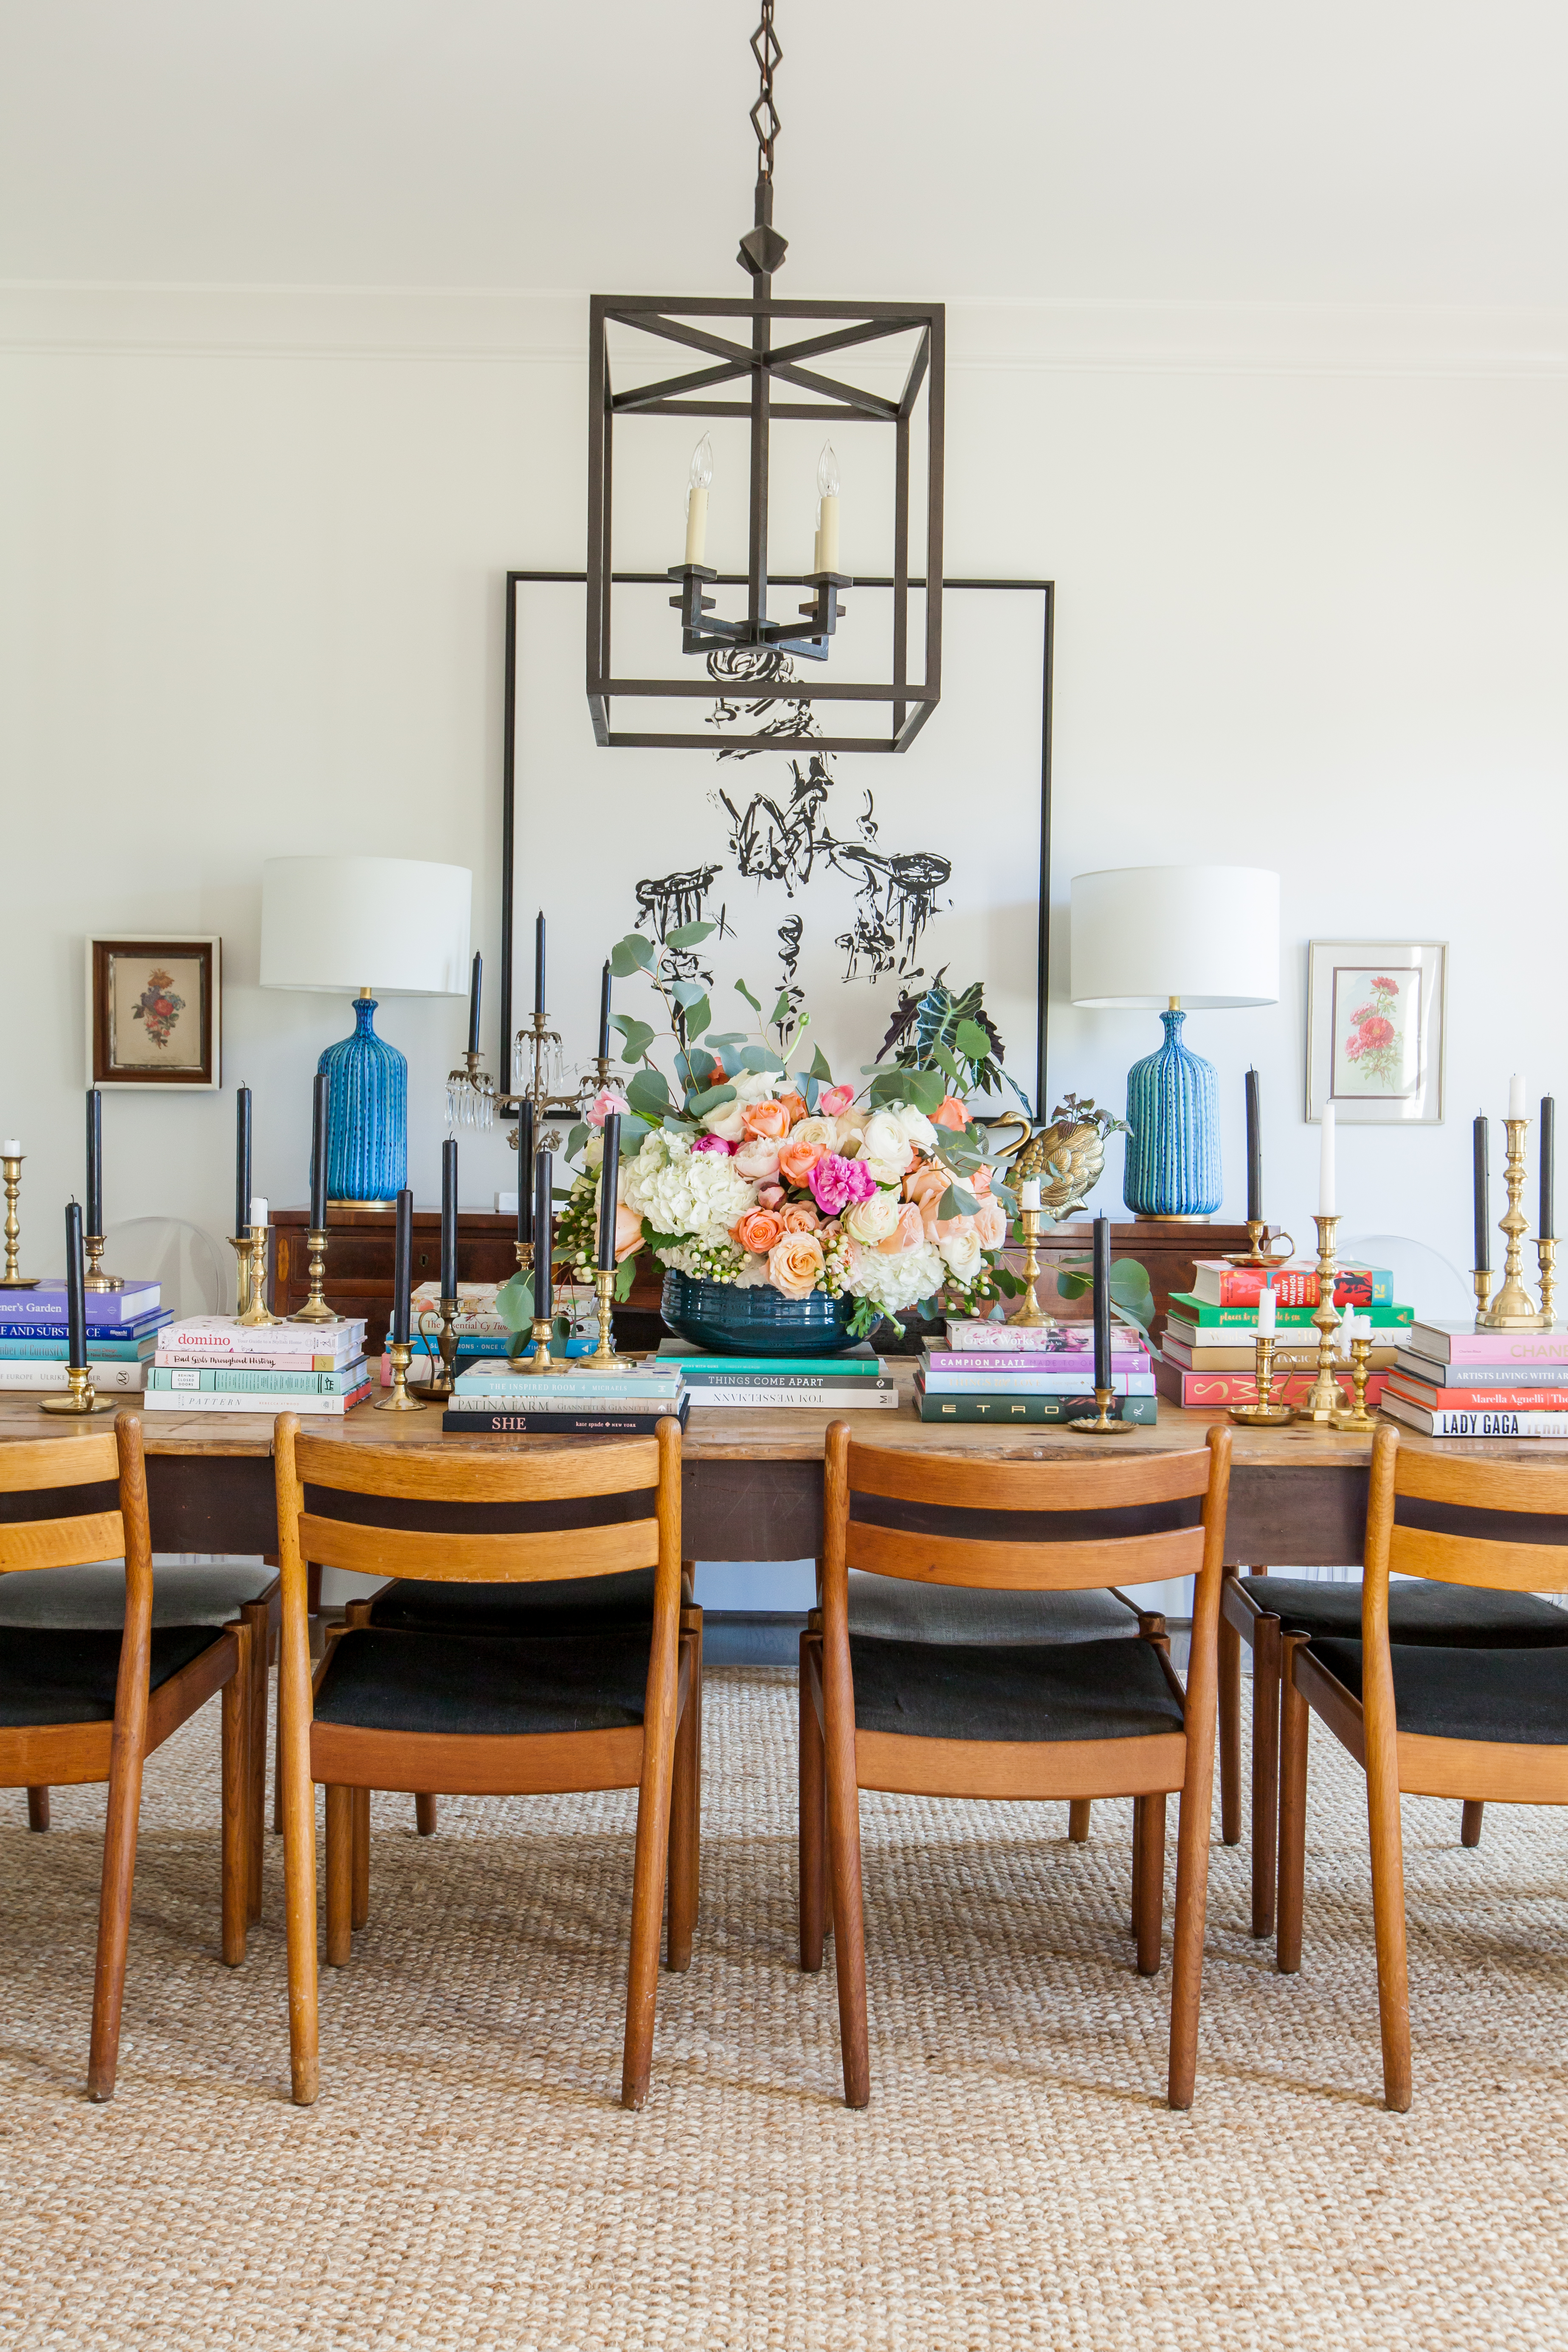 Wooden dining table with wooden chairs decorated with colorful books and flowers